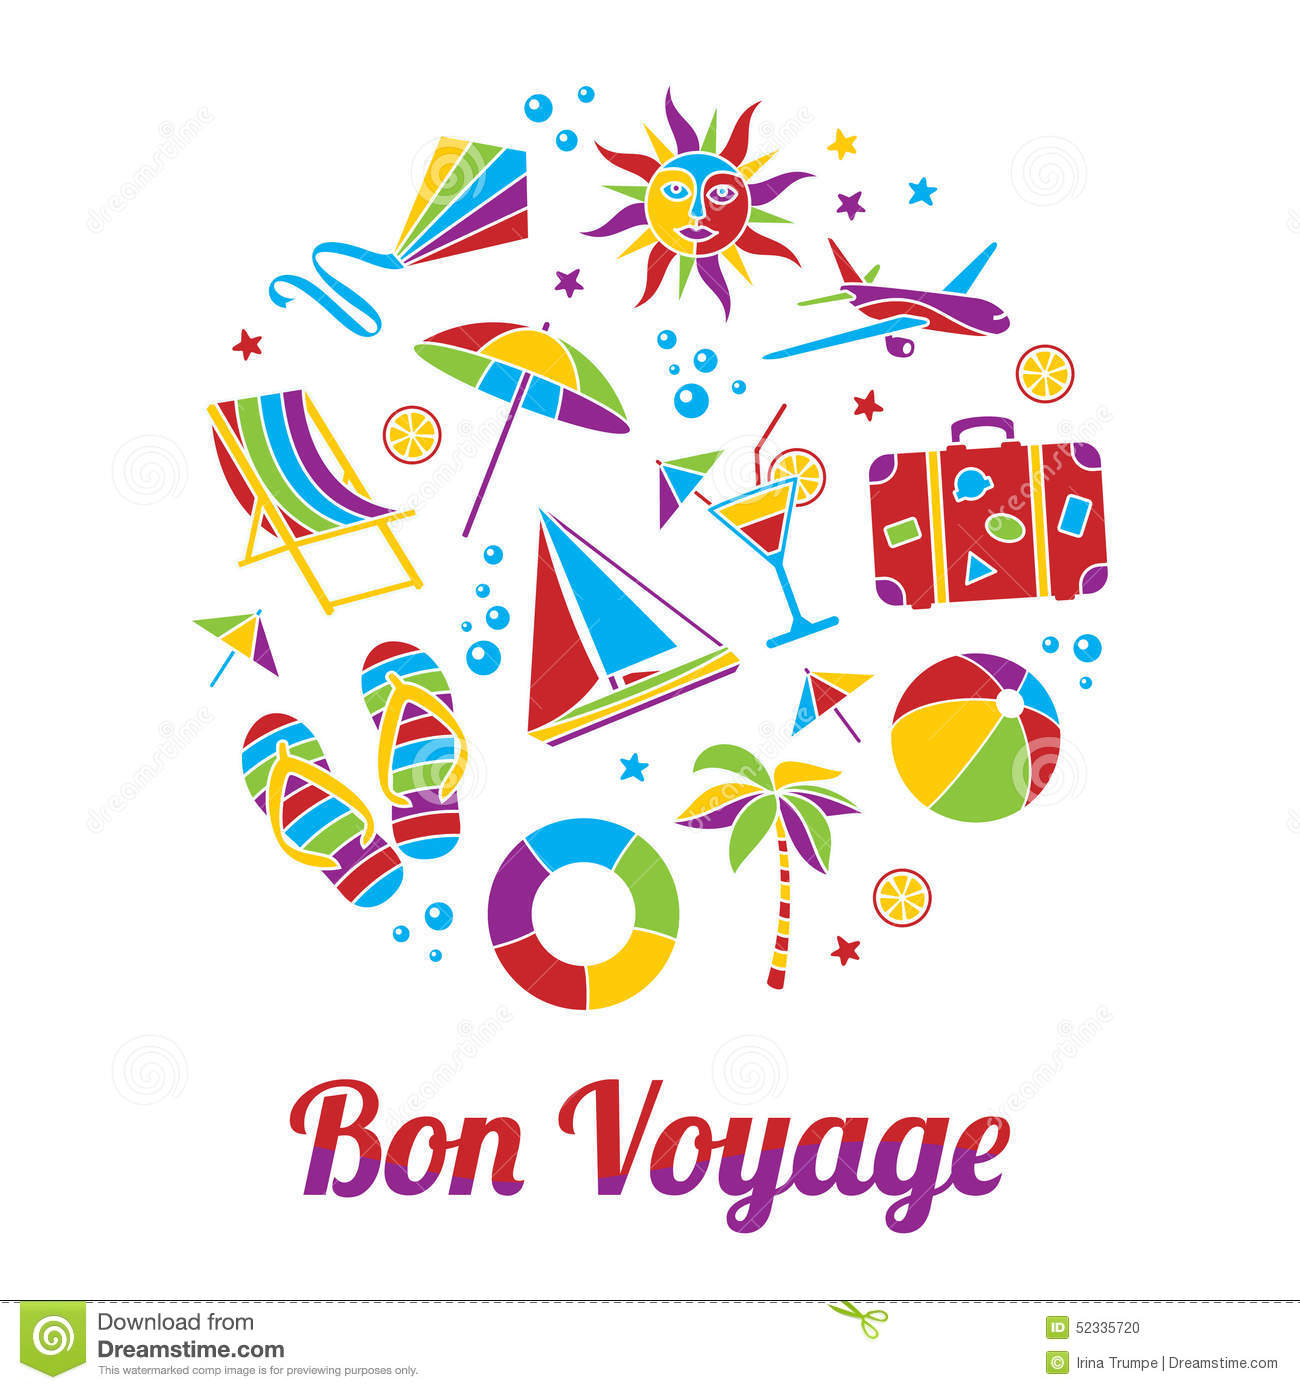 Cruise clipart bon voyage Vector Stock free Card bon